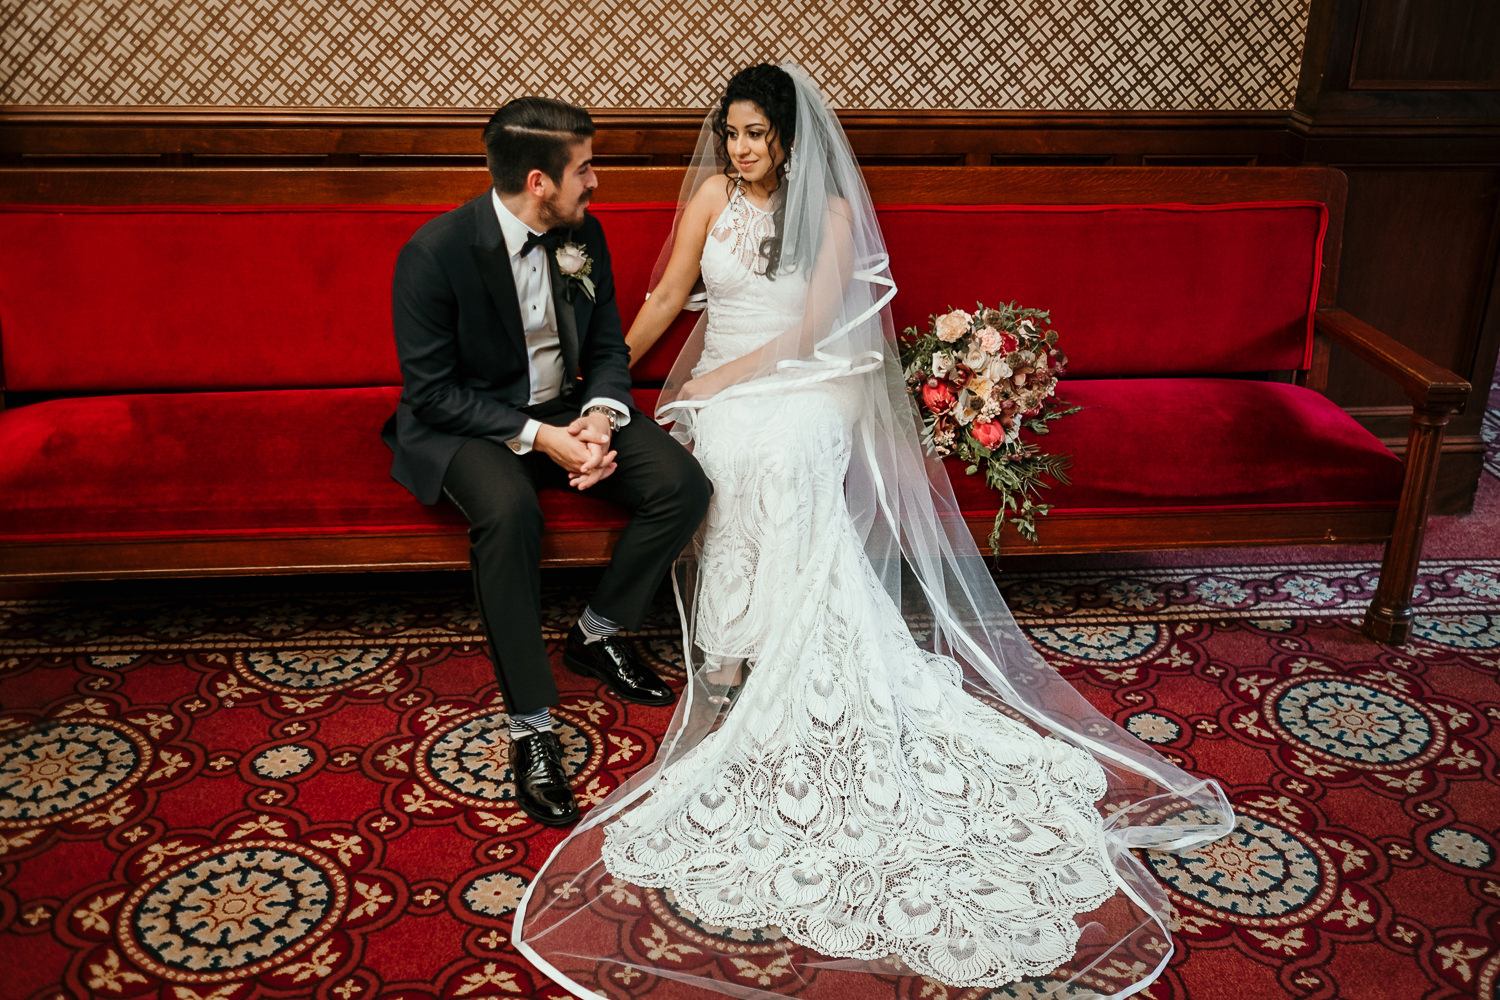 bride and groom holding hands sitting on red velvet couch